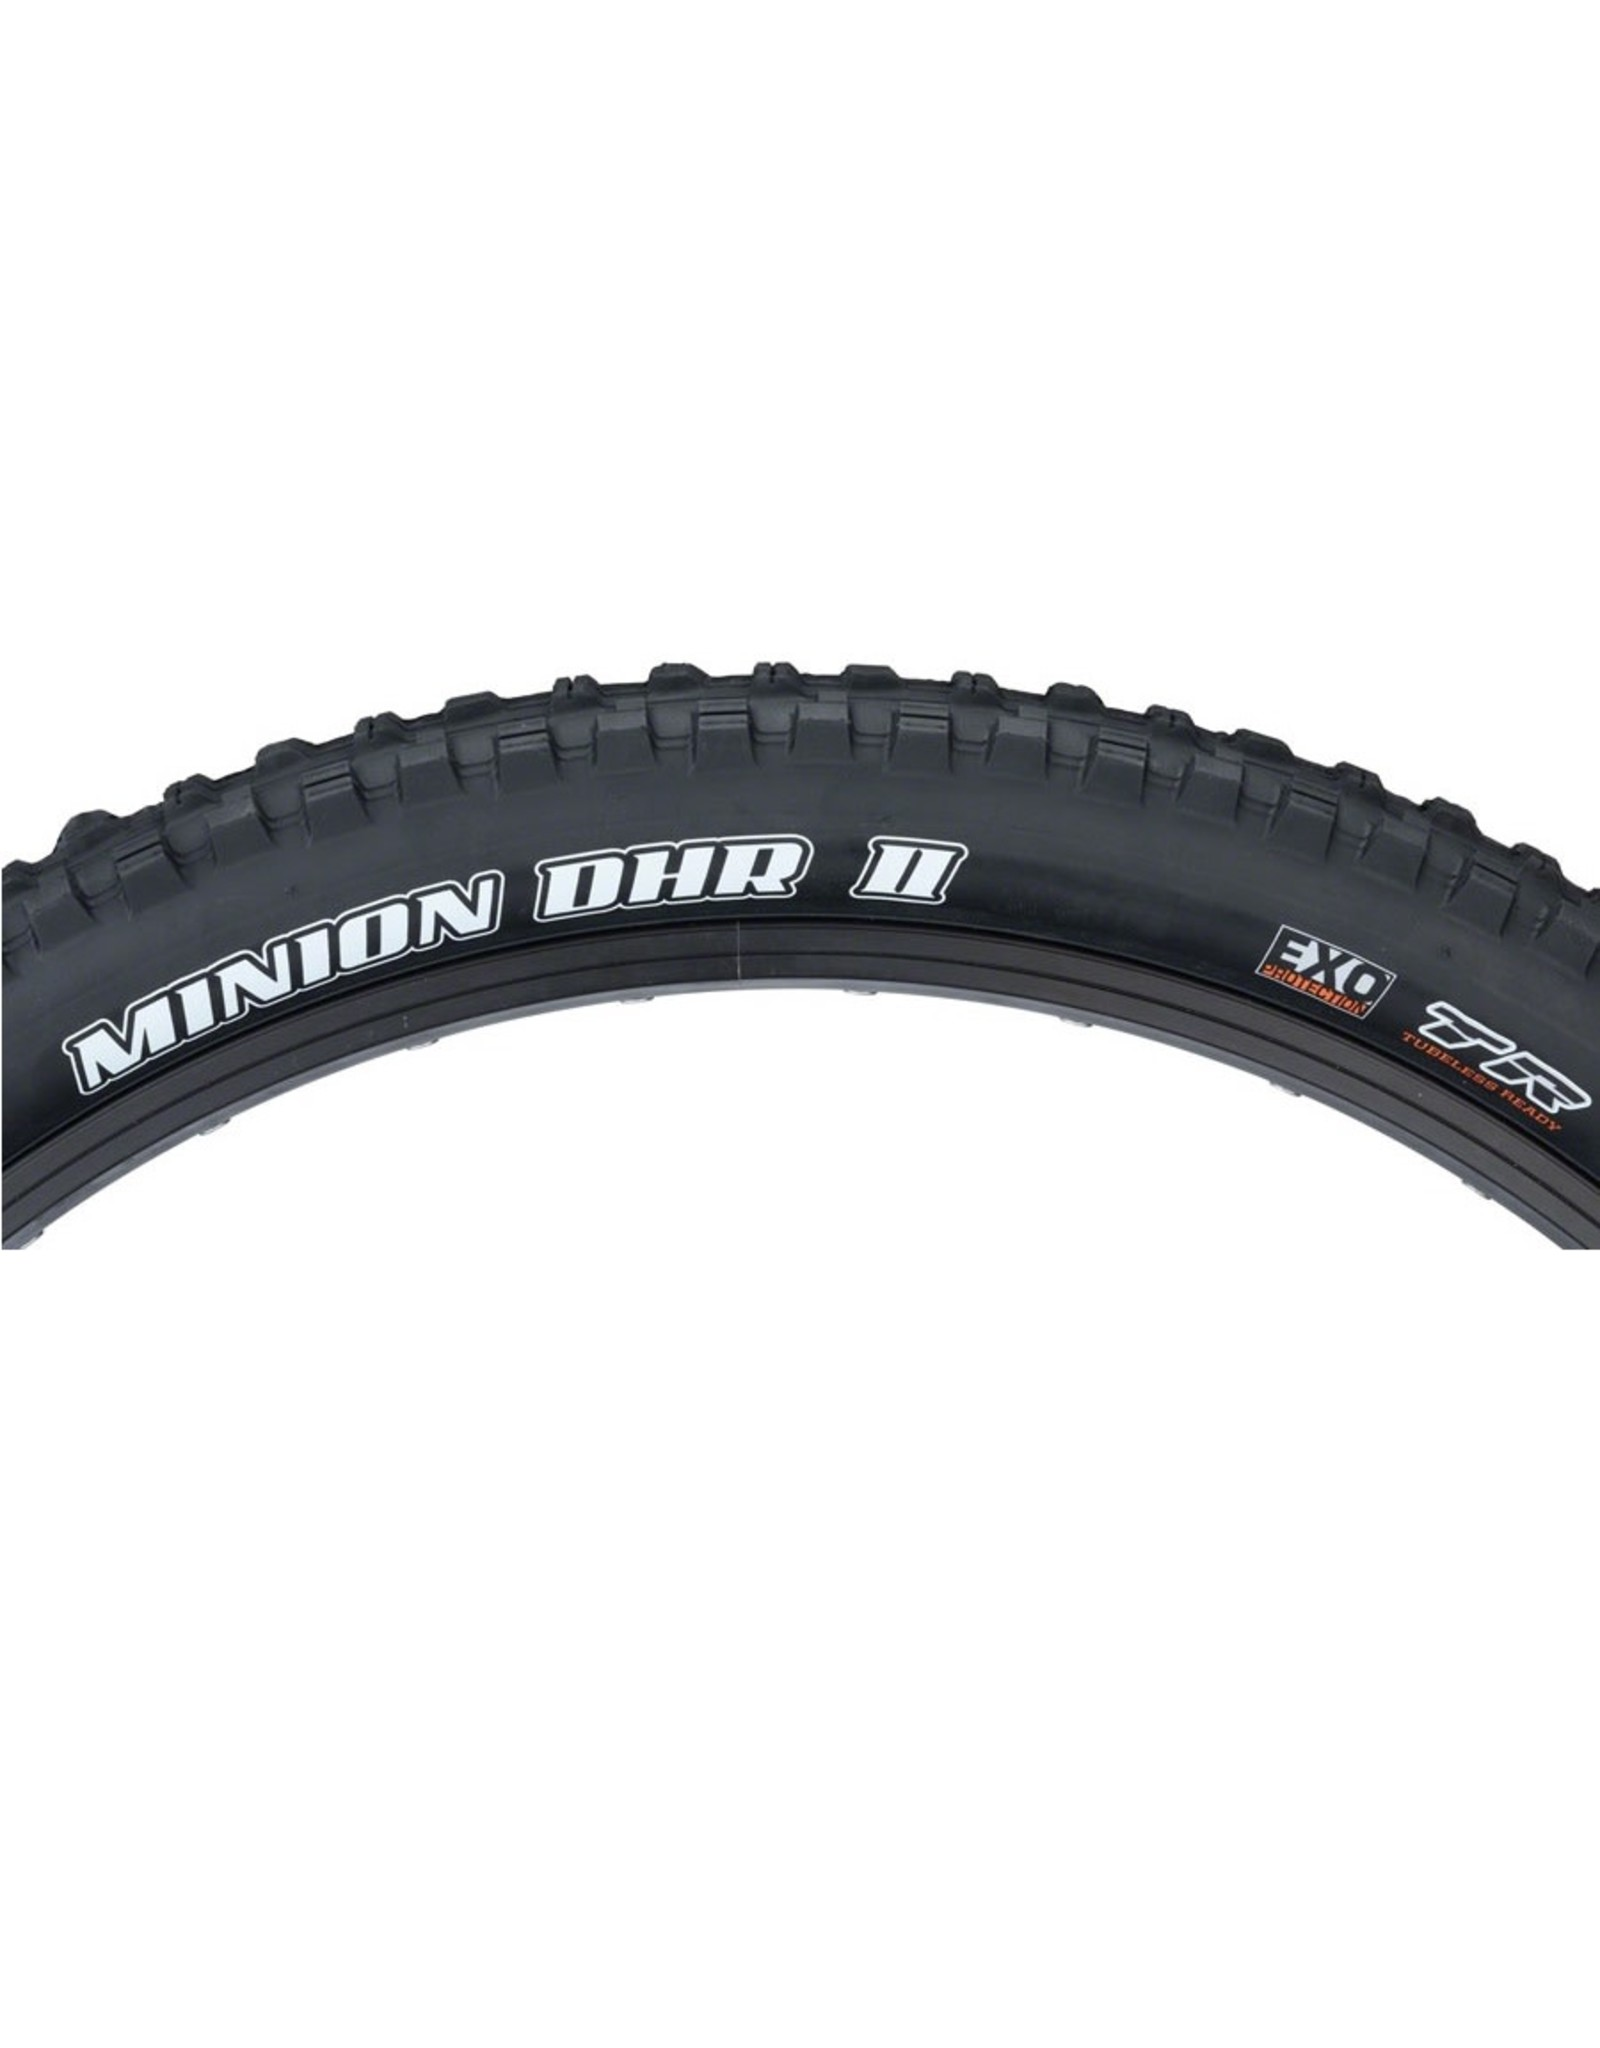 Maxxis Maxxis Minion DHR II Tire - 29 x 2.4, Tubeless, Folding, Black, Dual, EXO, Wide Trail